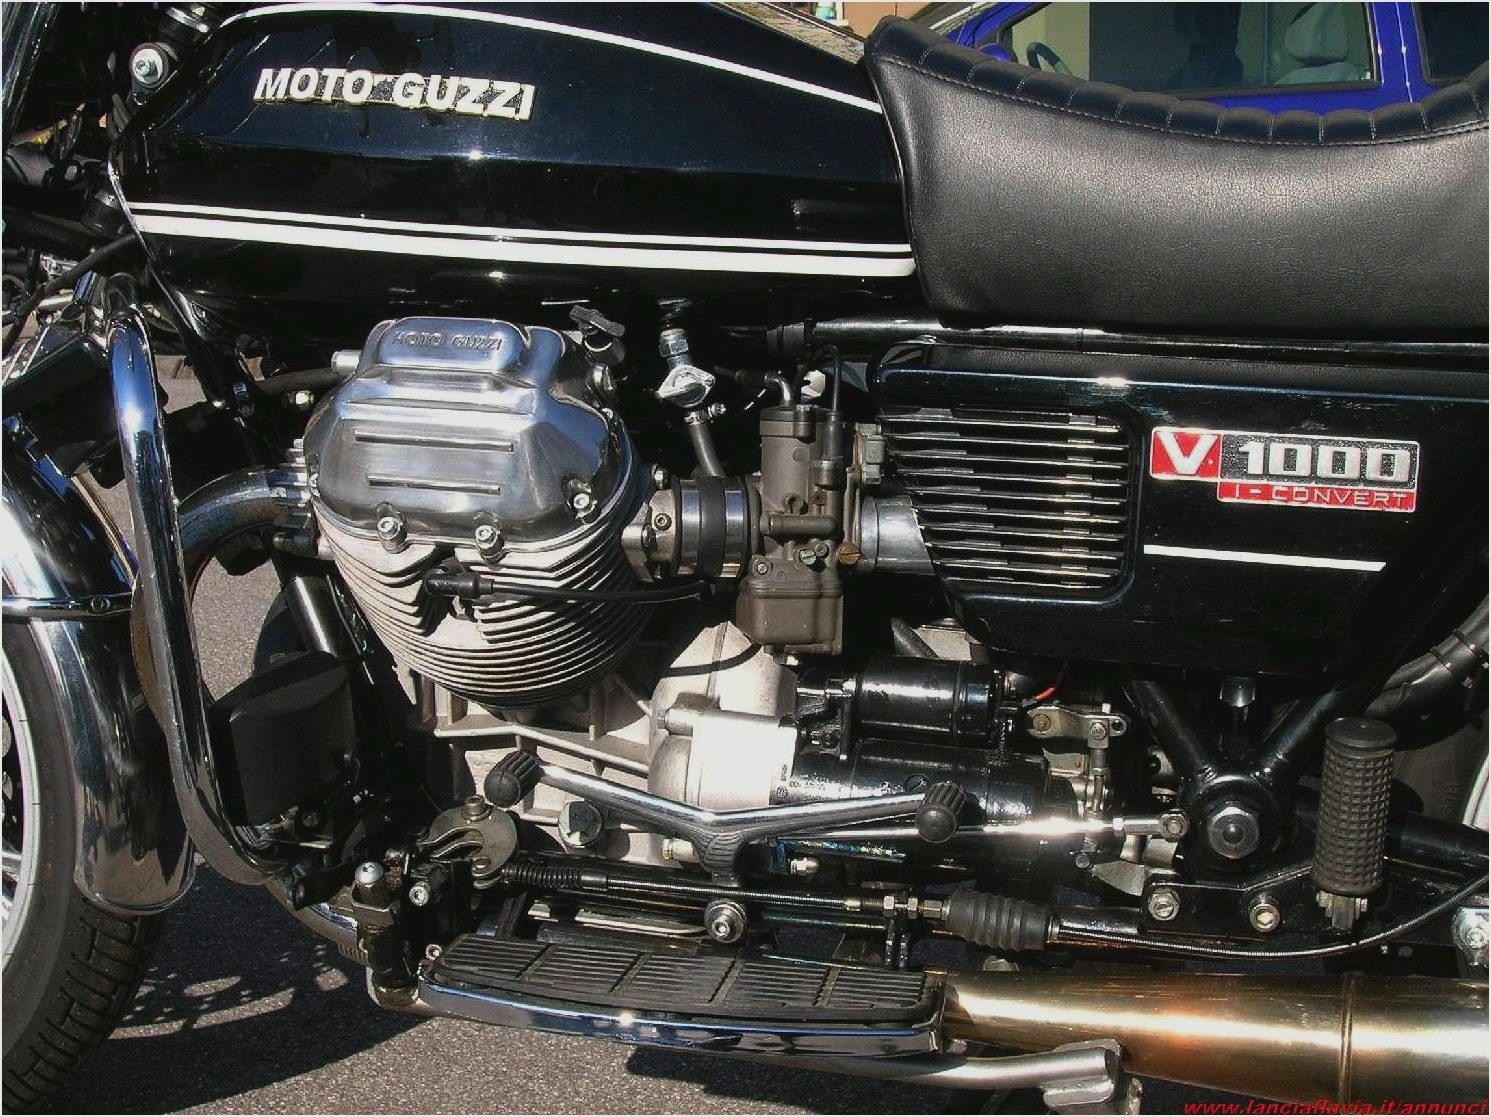 Moto Guzzi V 1000 I-Convert 1978 wallpapers #139886